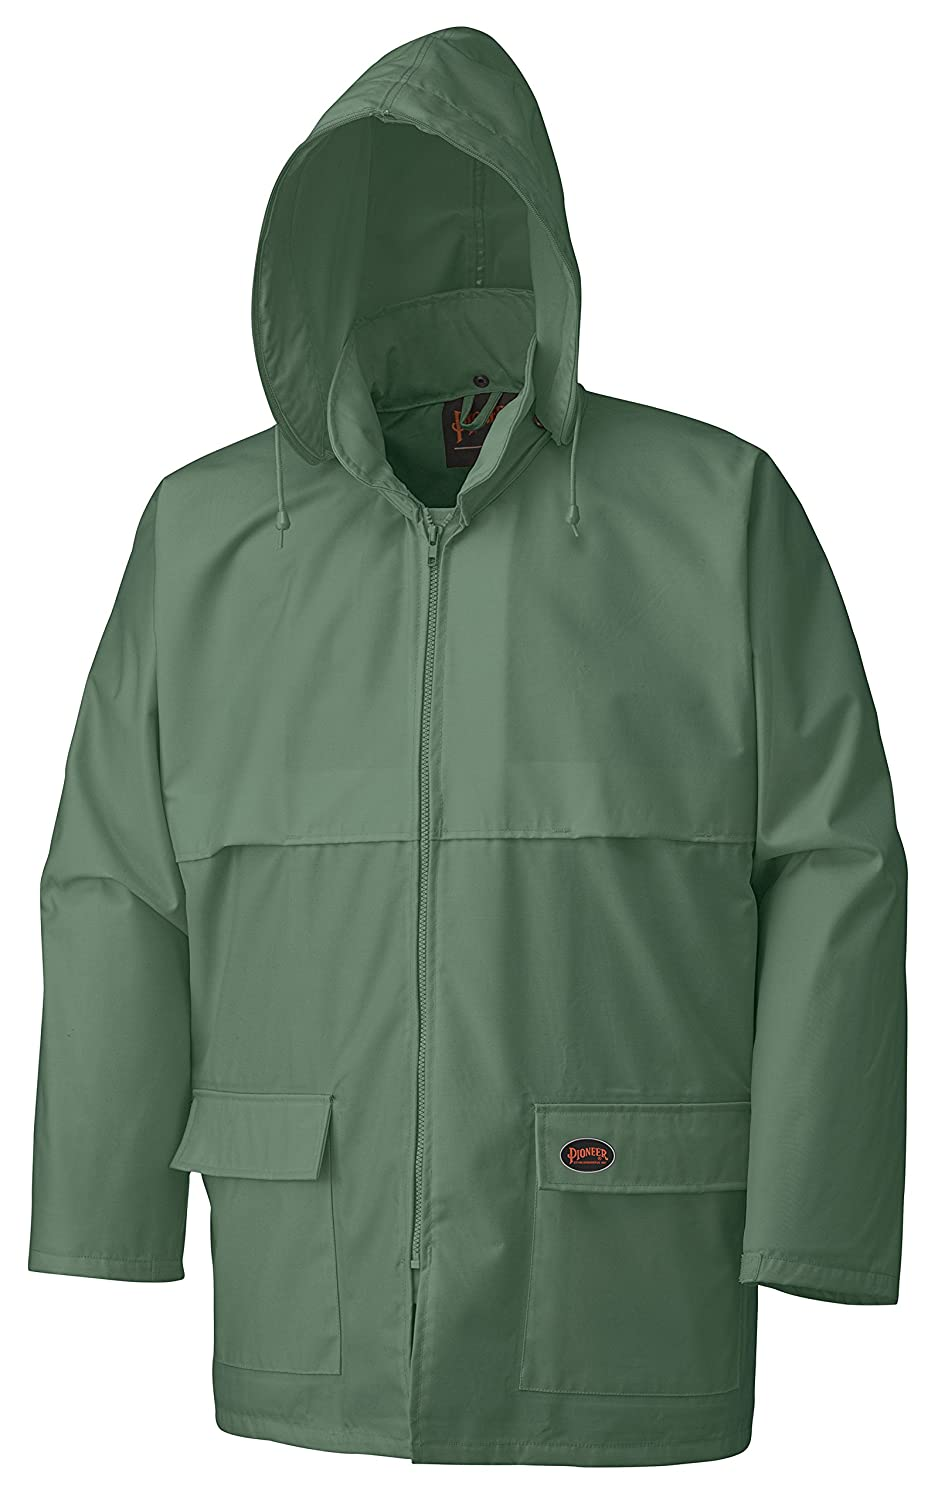 Pioneer V3040340-S Tree Planter Heavy-Duty Rain Jacket, 2 Large Cargo Pockets, Green, S